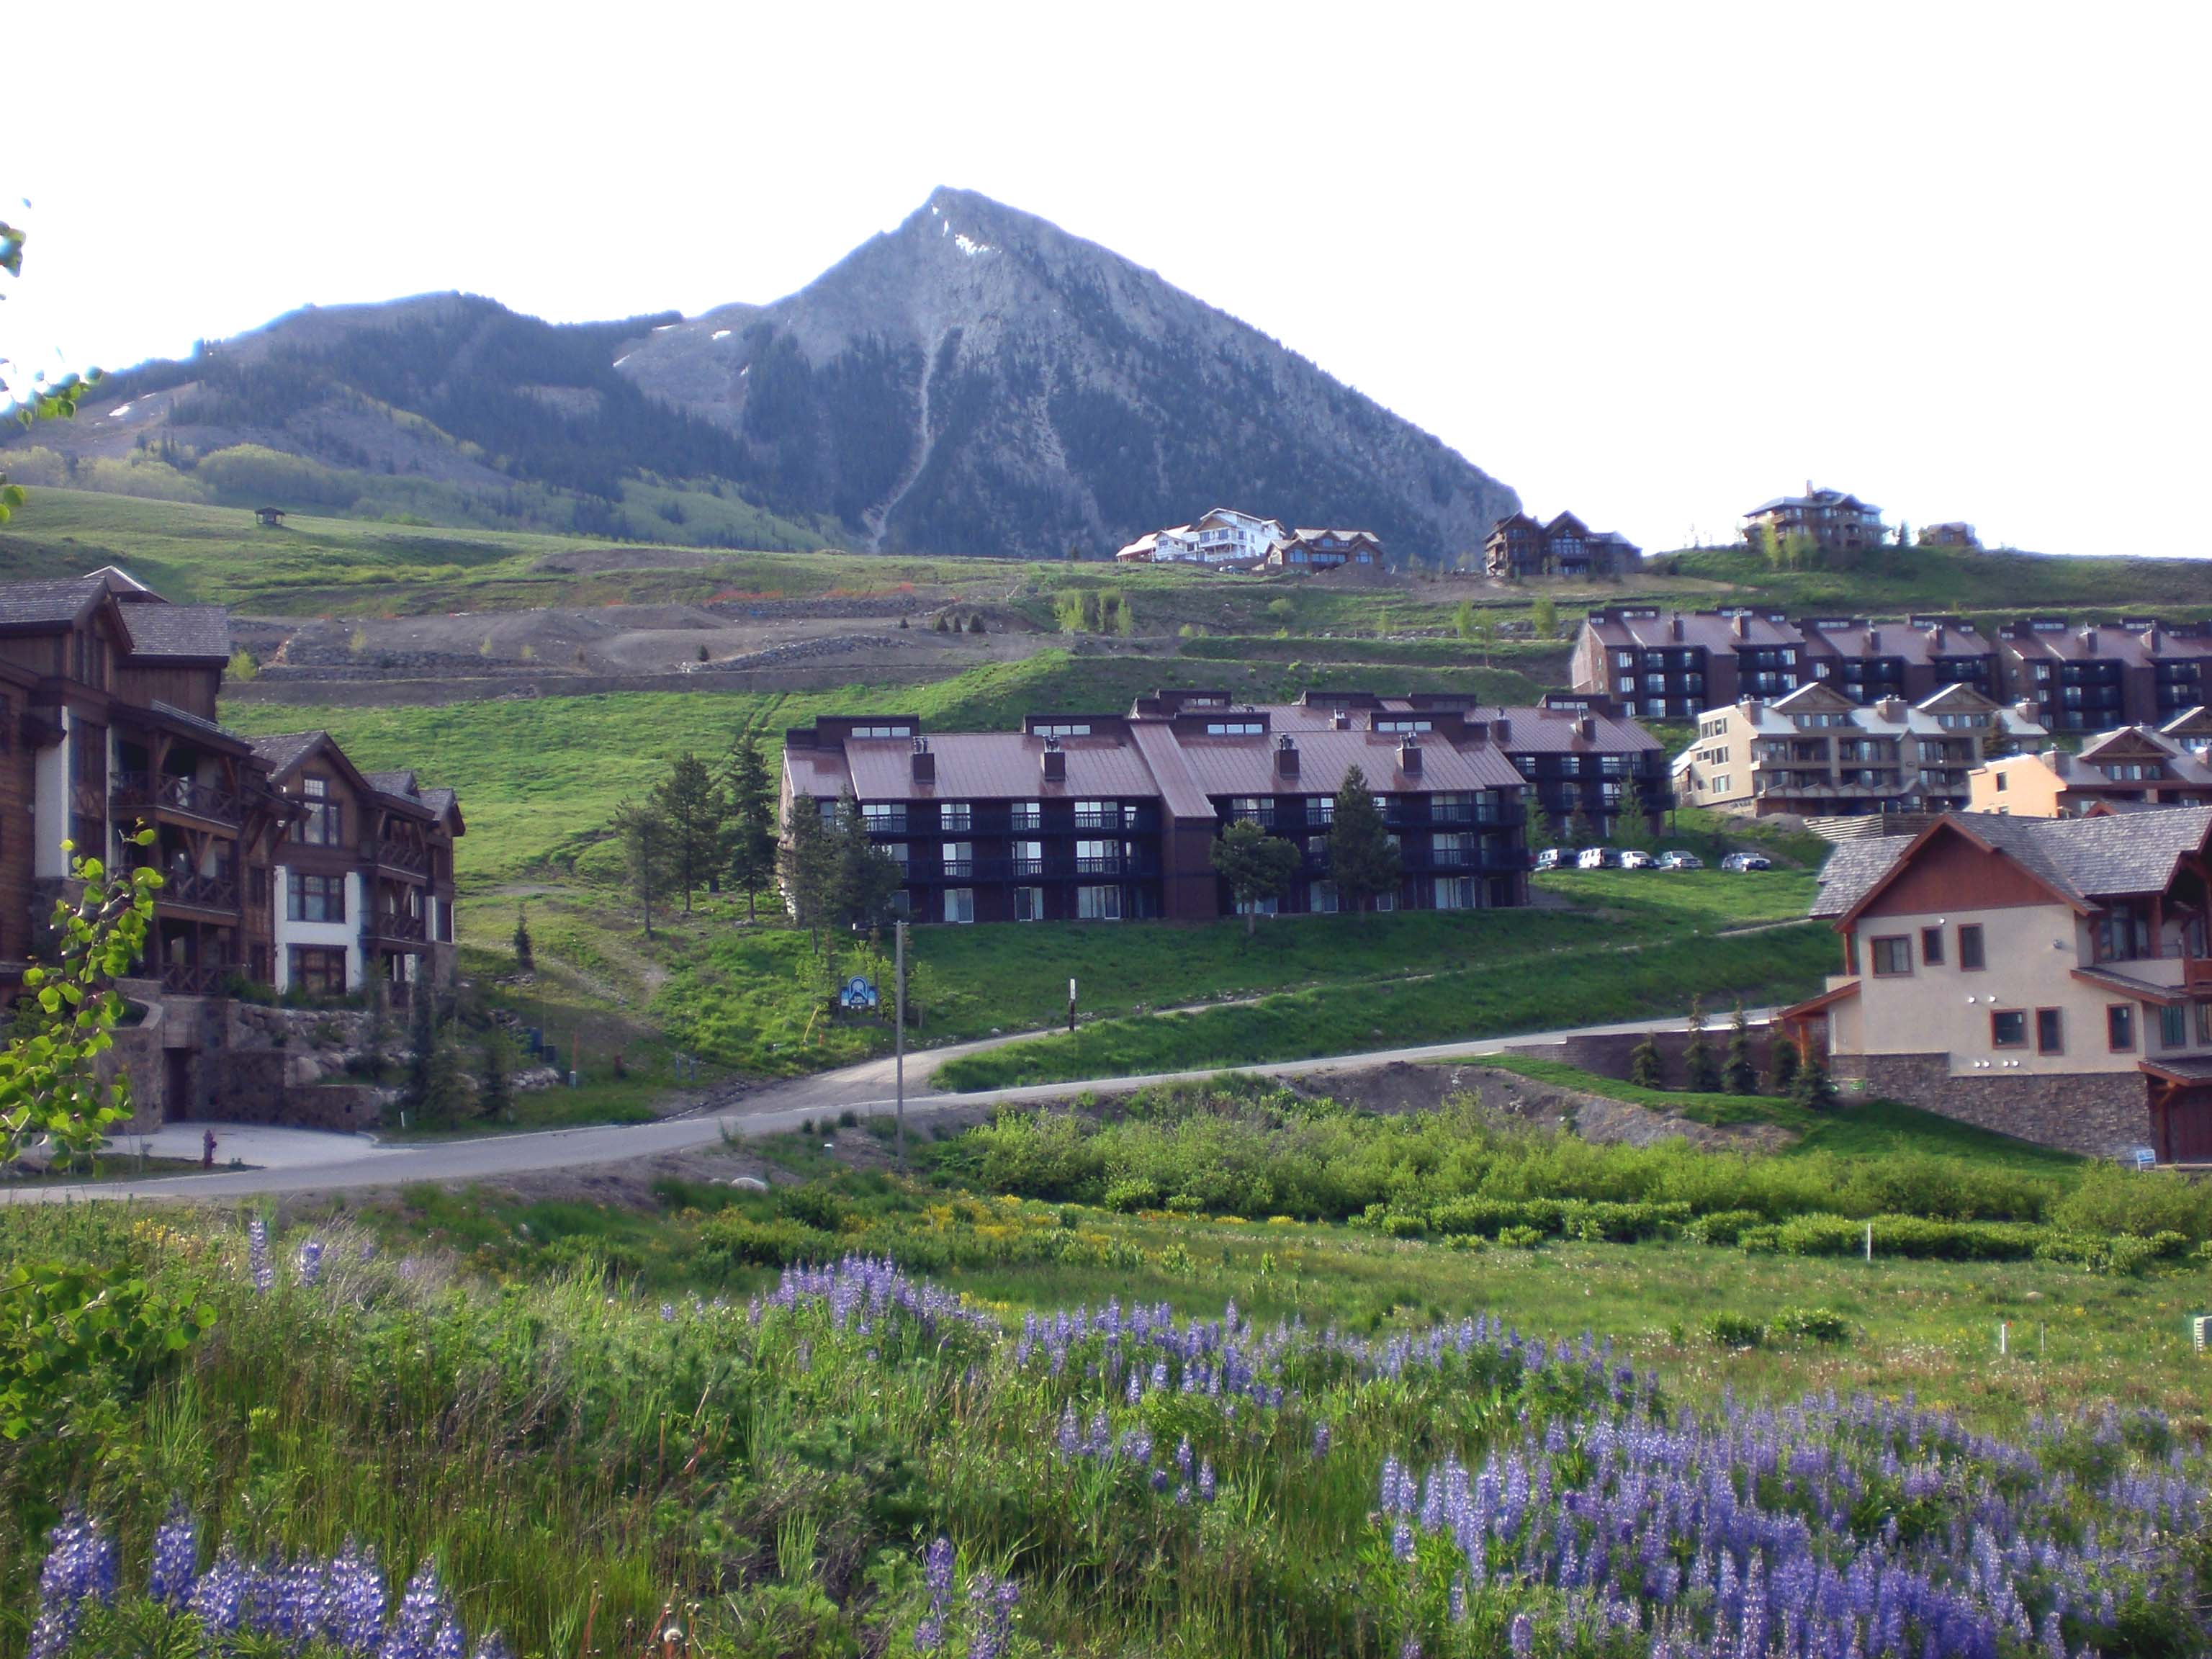 Land for Sale at Bear Crossing Multi-Family Development Lot 14 Castle Road Mount Crested Butte, Colorado 81225 United States